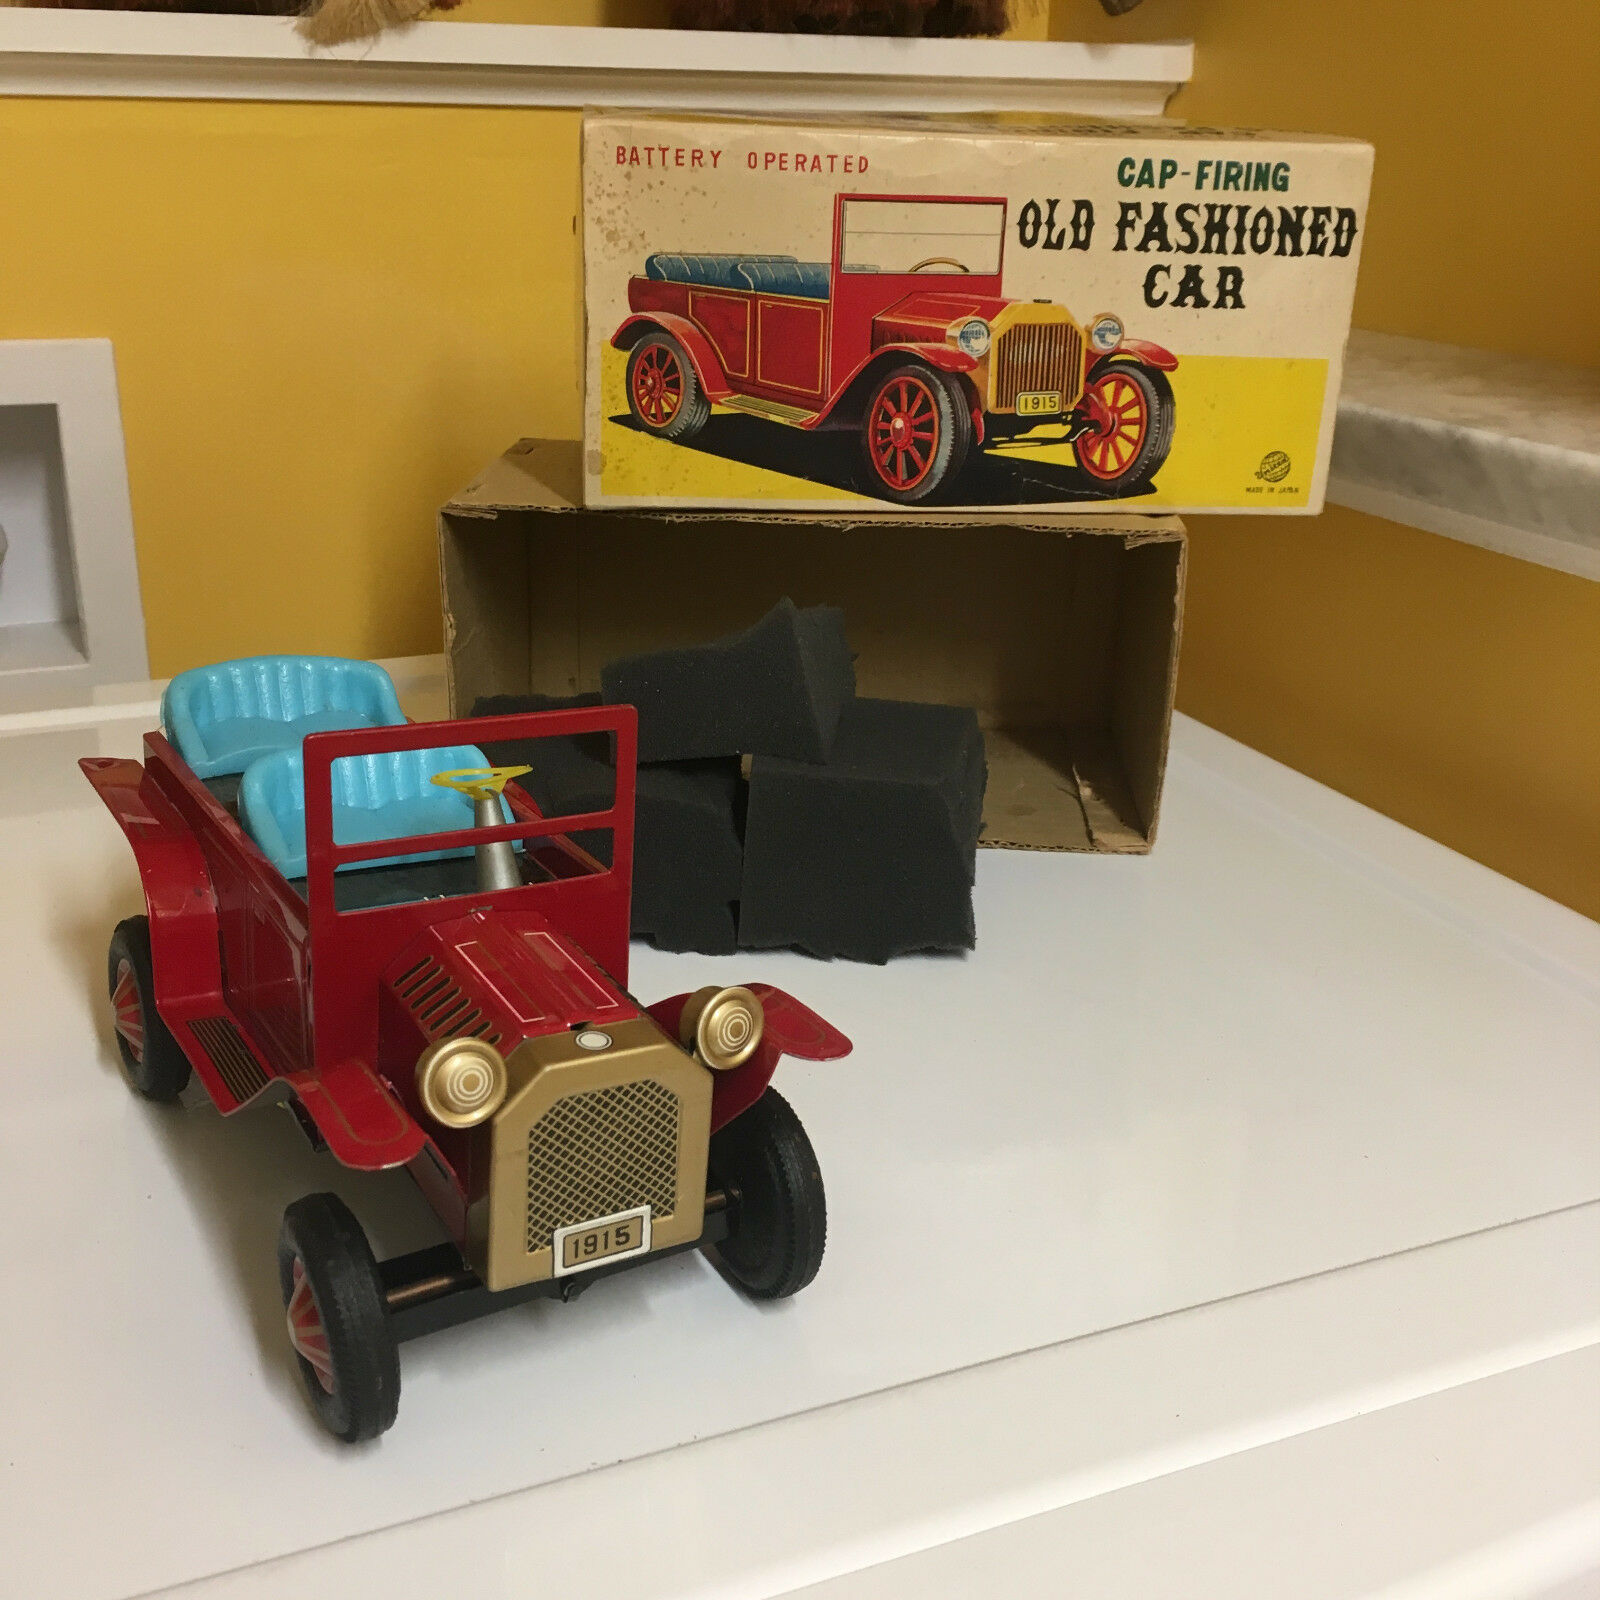 VINTAGE, TIN B O CAP FIRING OLD FASHION CAR  COMPLETE W BOX  FULLY OPERATIONAL